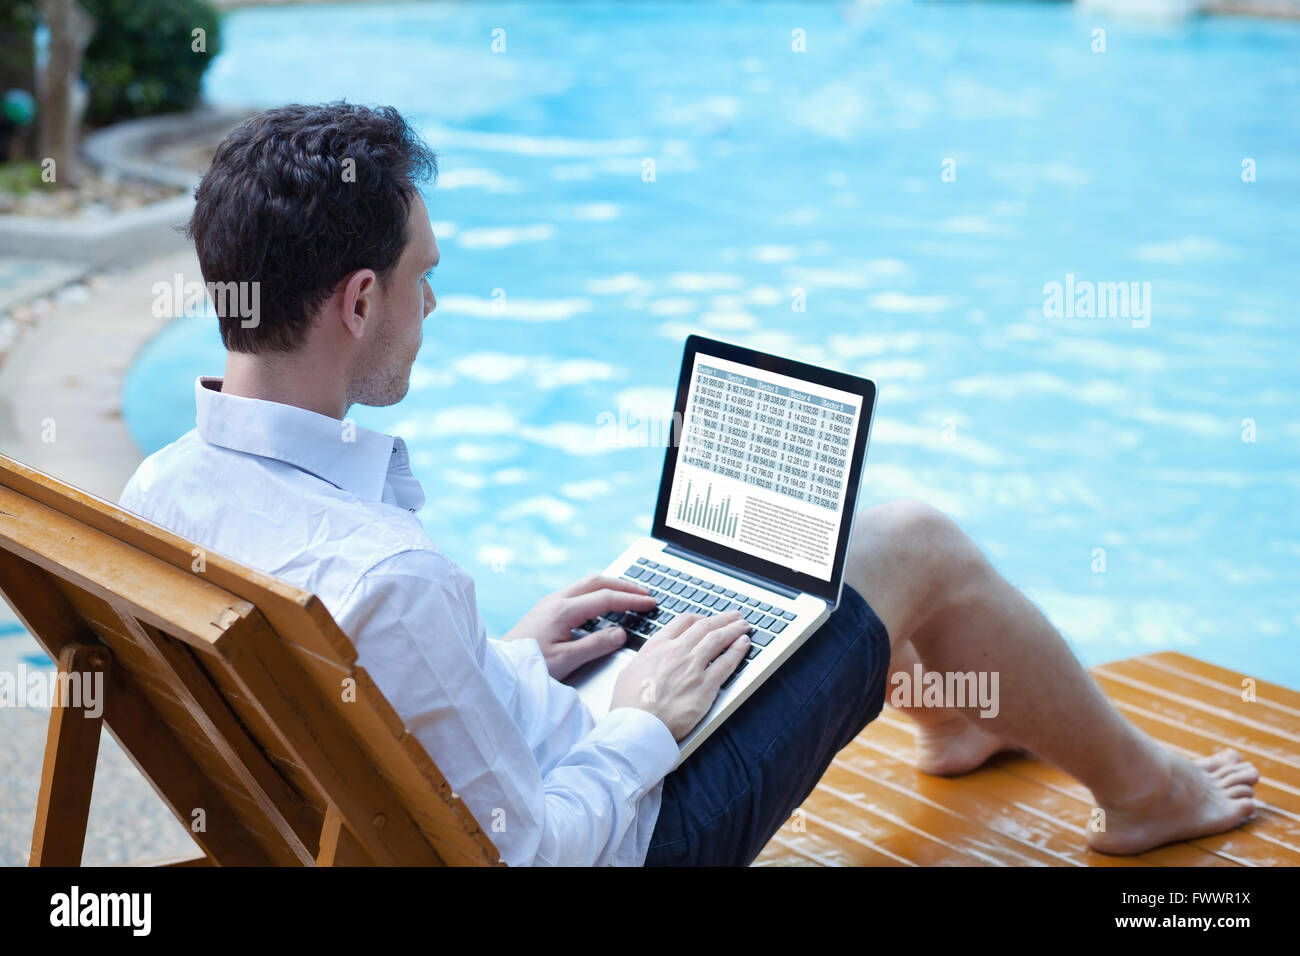 stock market online, business man working with financial data online on laptop near swimming pool - Stock Image